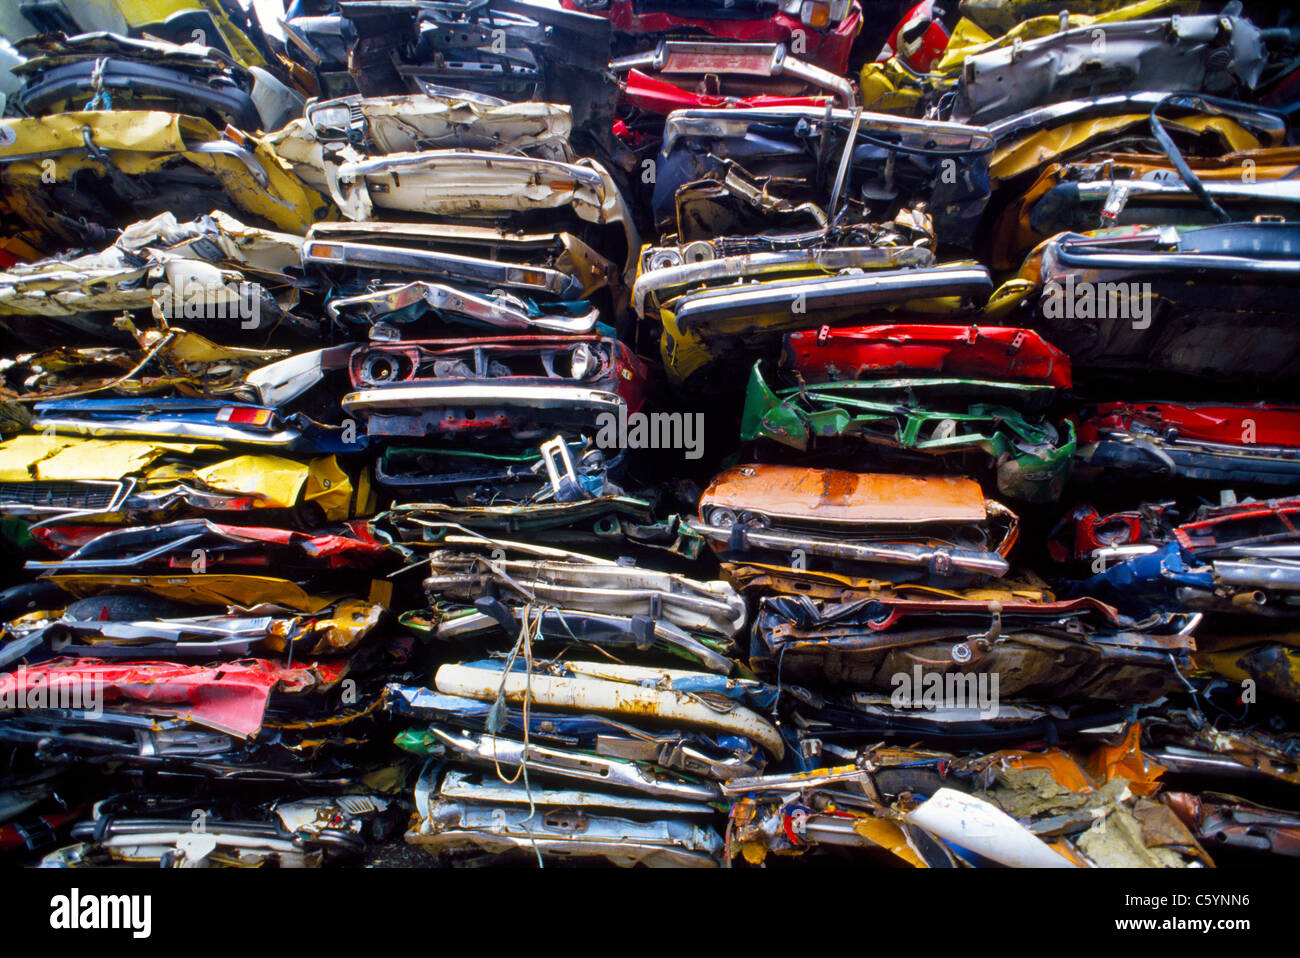 Luxury Sell Cars For Scrap Metal Elaboration - Classic Cars Ideas ...